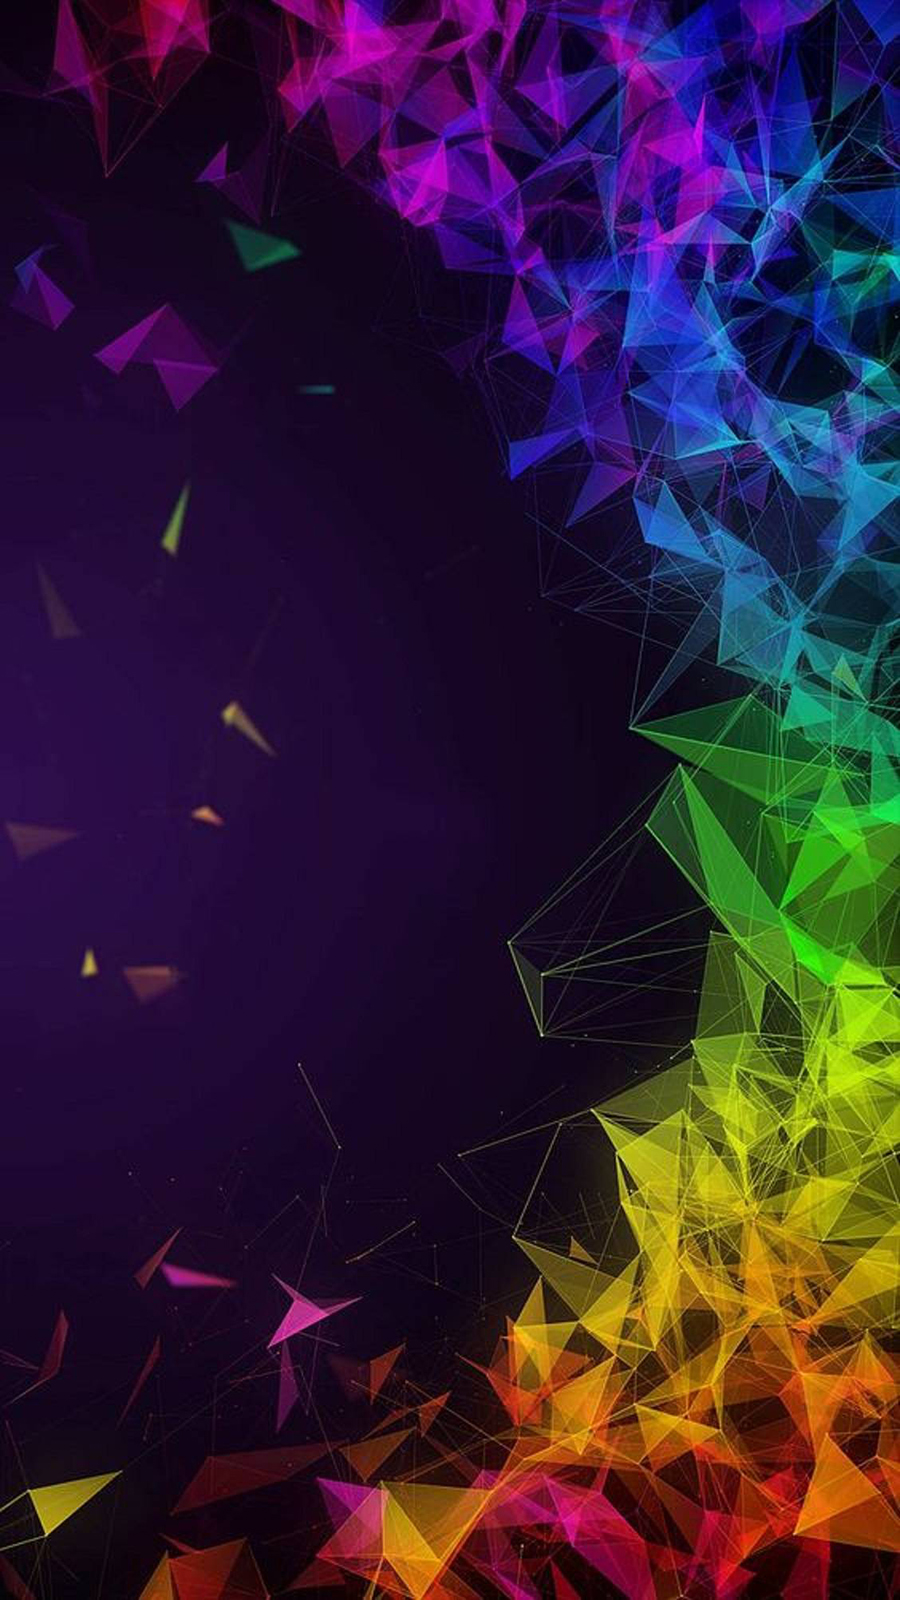 Rainbow Art Wallpapers Free Download For Your Device